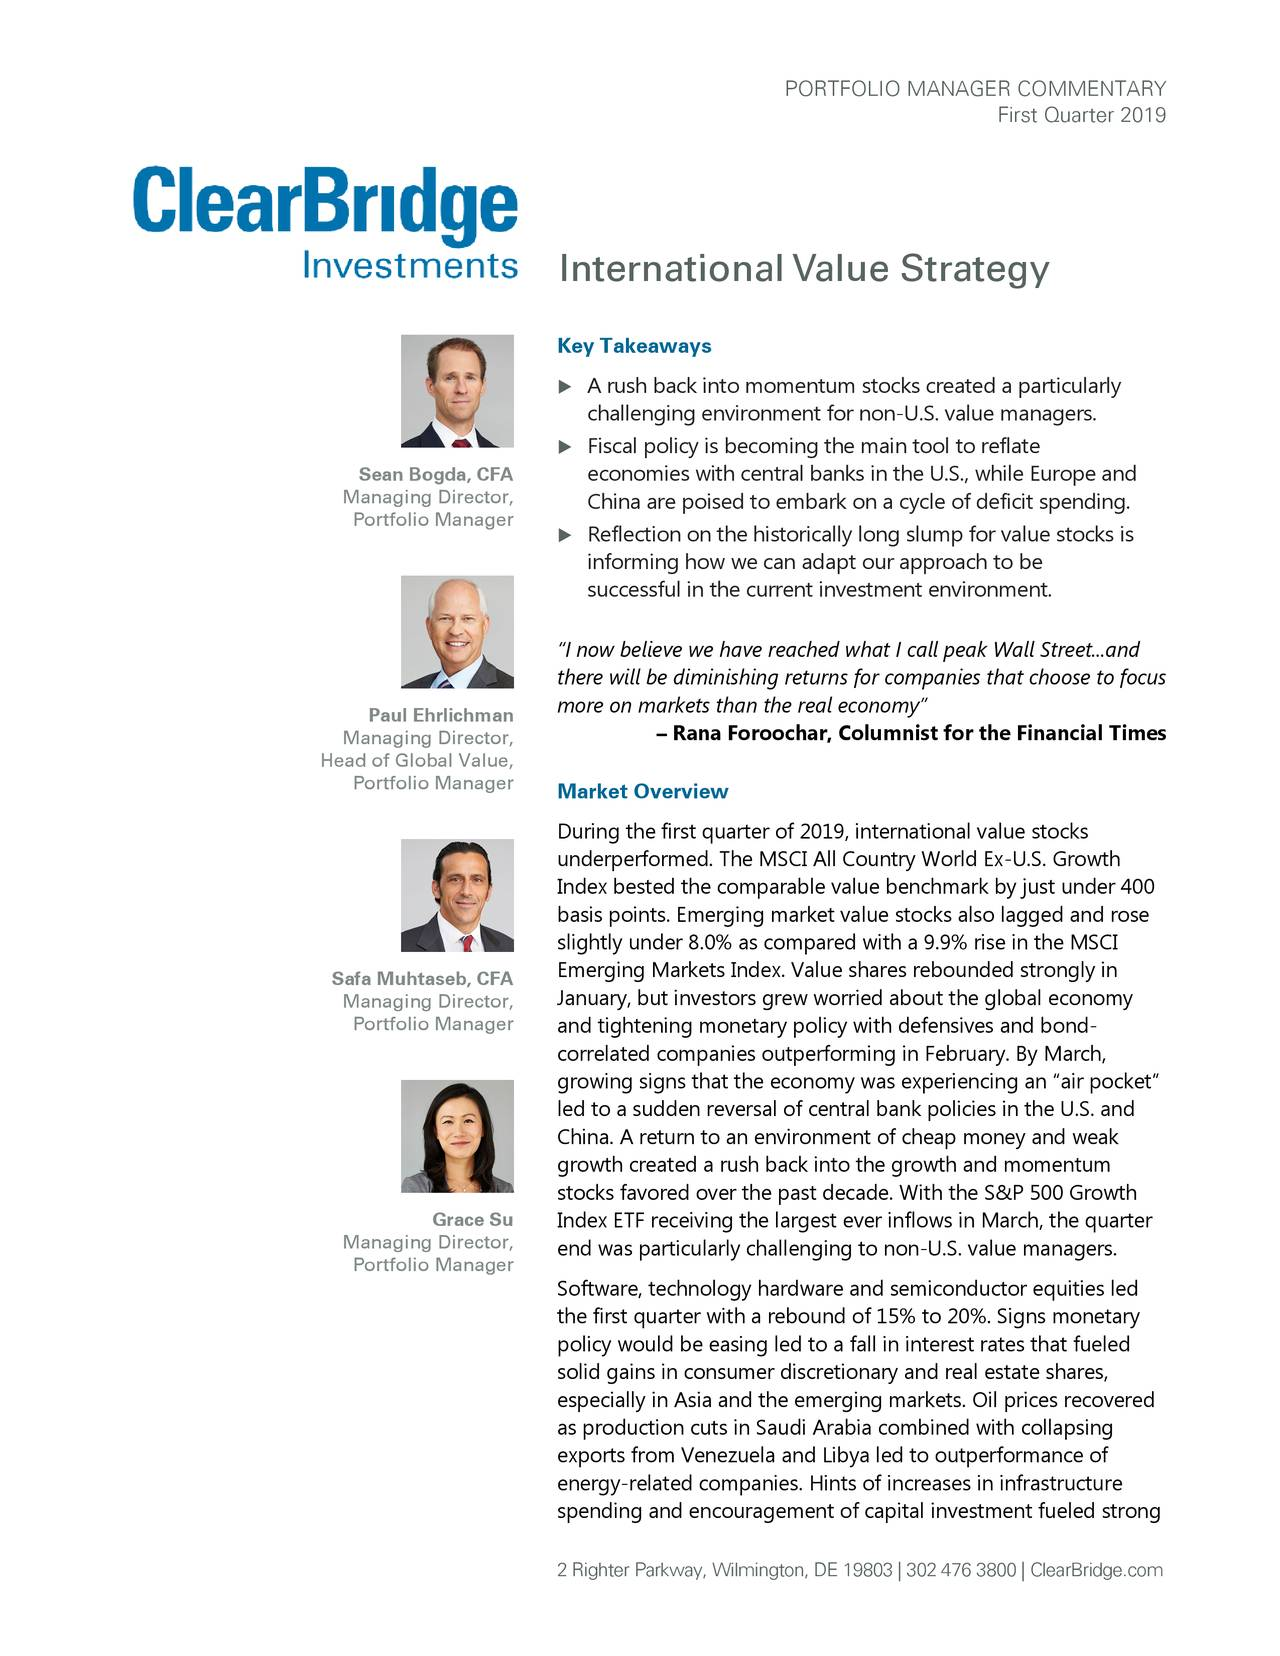 """First Quarter 2019 International Value Strategy Key Takeaways  A rush back into momentum stocks created a particularly challenging environment for non- U.S. value managers.  Fiscal policy is becoming the main tool to reflate Sean Bogda, CFA economies with central banks in the U.S., while Europe and Managing Director, China are poised to embark on a cycle of deficit spending. Portfolio Manager  Reflection on the historically long slump for value stocks is informing how we can ada pt our approach to be successful in the current investment environment. """"I now believe we have reached what I call peak Wall Street...and there will be diminishing returns for companies that choose to focus more on markets than the real economy"""" Paul Ehrlichman Managing Director, – Rana Foroochar, Columnist for the Financial Times Head of Global Value, Portfolio Manager Market Overview During the first quarter of 2019, international value stocks underperformed. The MSCI All Country World Ex-U.S. Growth Index bested the comparable value benchmark by just under 400 basis points. Emerging market value stocks also lagged and rose slightly under 8.0% as compared with a 9.9% rise in the MSCI Emerging Markets Index. Value shares rebounded strongly in Safa Muhtaseb, CFA Managing Director, January, but investors grew worried about the global economy Portfolio Manager and tightening monetary policy with defensives and bond- correlated companies outperforming in February. By March, growing signs that the economy was experiencing an """"air pocket"""" led to a sudden reversal of central bank policies in the U.S. and China. A return to an environment of cheap money and weak growth created a rush back into the growth and momentum stocks favored over the past decade. With the S&P 500 Growth Grace Su Index ETF receiving the largest ever inflows in March, the quarter Managing Director, end was particularly challenging to non-U.S. value managers. Portfolio Manager Software, technology hardware and semiconductor equ"""